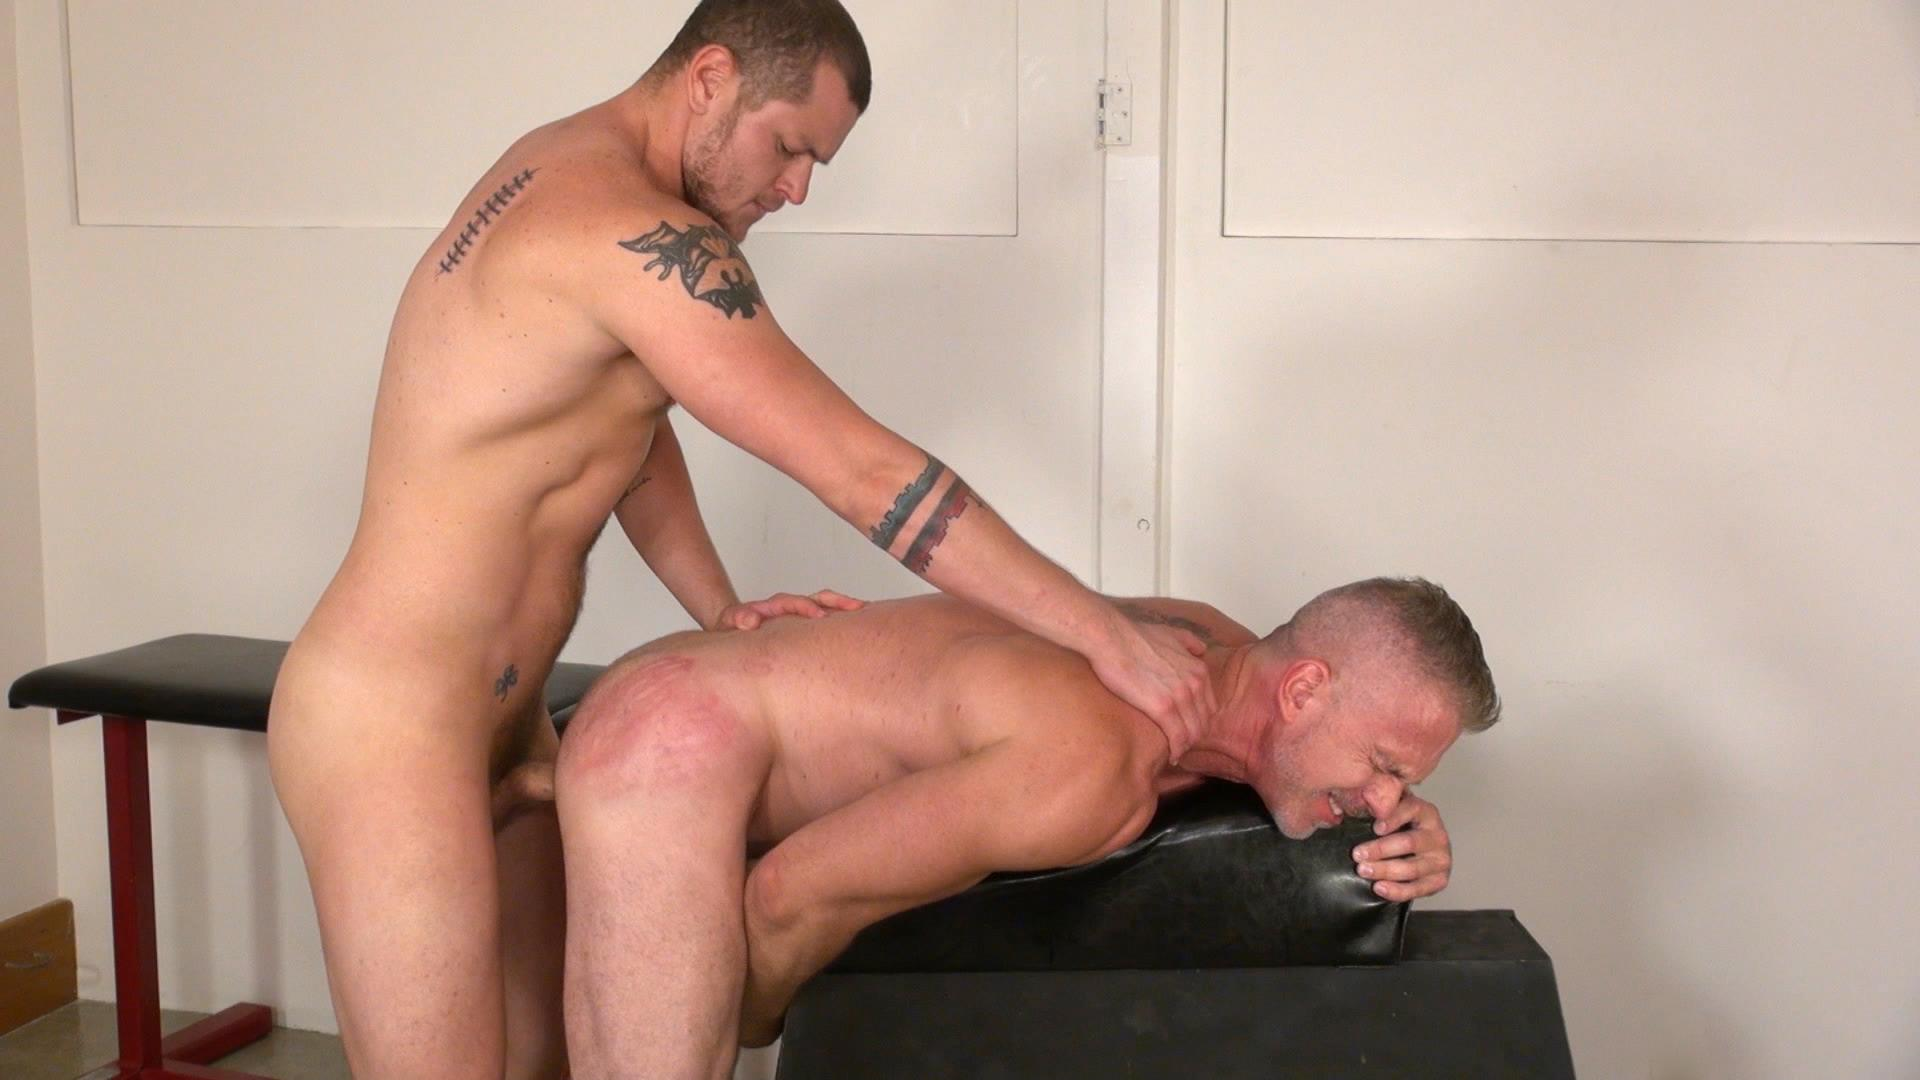 Raw-and-Rough-Sam-Dixon-and-Blue-Bailey-Daddy-And-Boy-Flip-Flip-Bareback-Fucking-Amateur-Gay-Porn-10.jpg